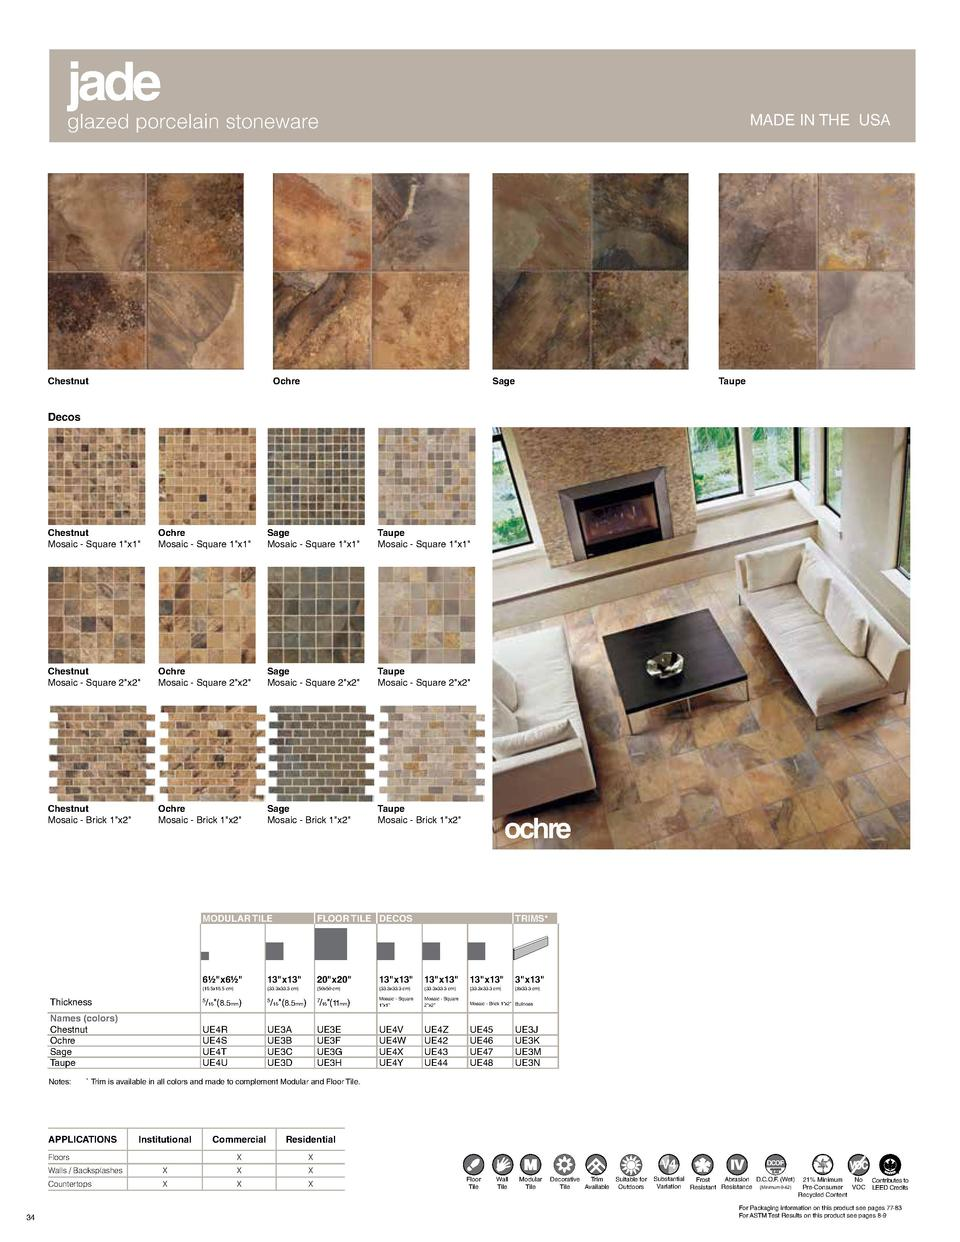 jade  glazed porcelain stoneware  Chestnut  MADE IN THE USA  Ochre  Sage  Taupe  Decos  Chestnut Mosaic - Square 1 x1   Oc...